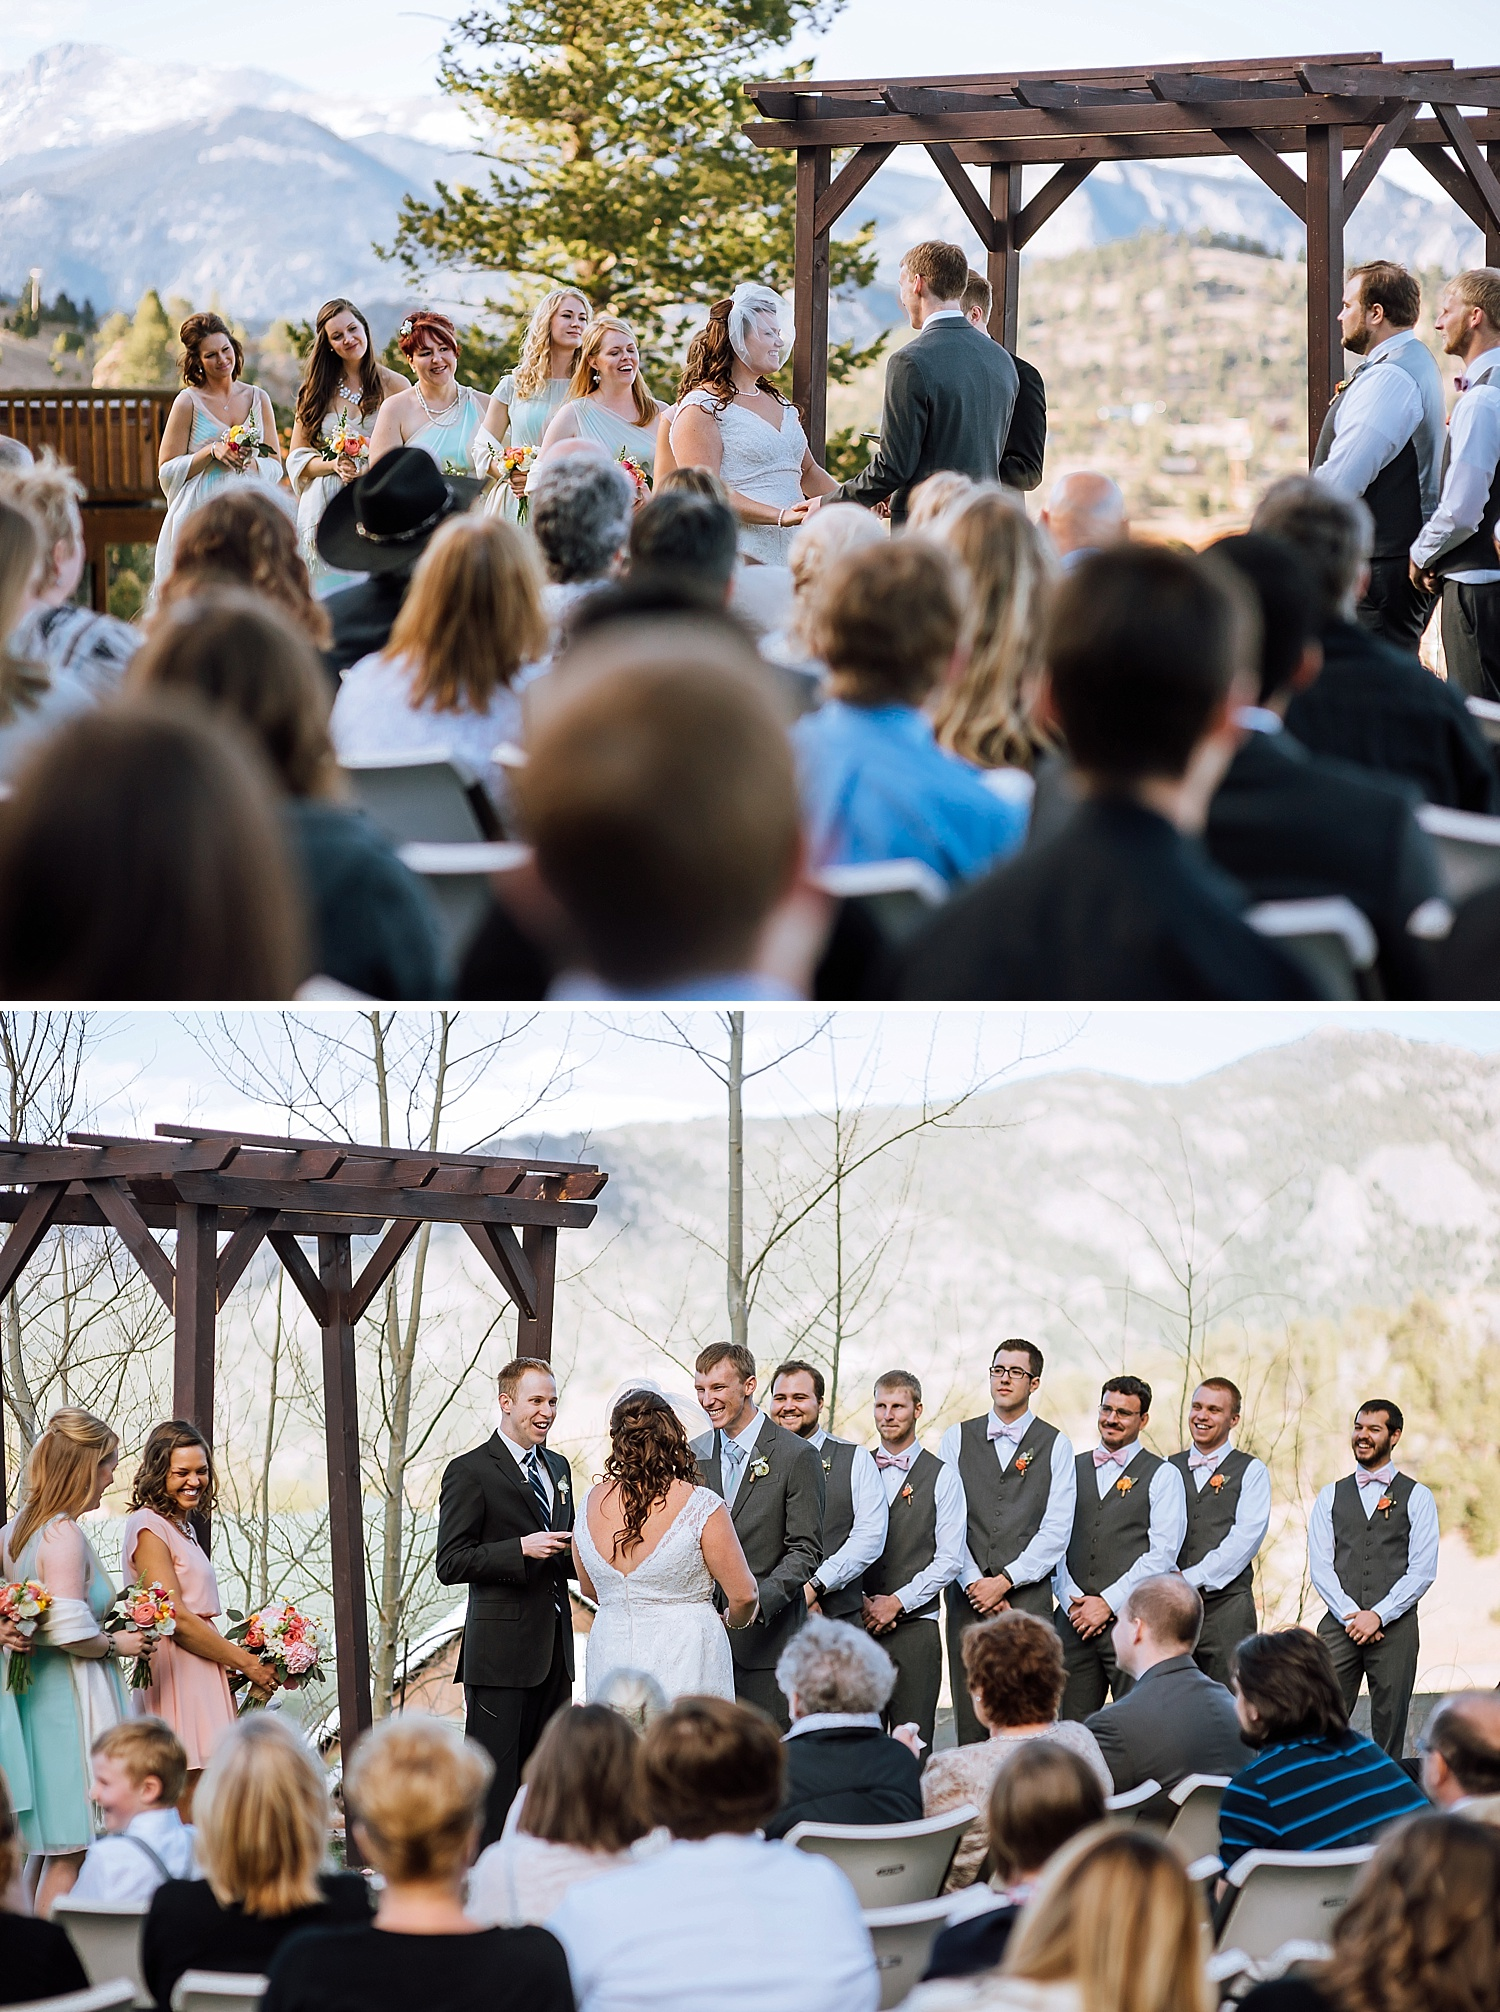 I love these blush pink and tiffany blue wedding colors. They make the ceremony seem so bright. I really want a mountain wedding..Photo by Maddie Mae Photography